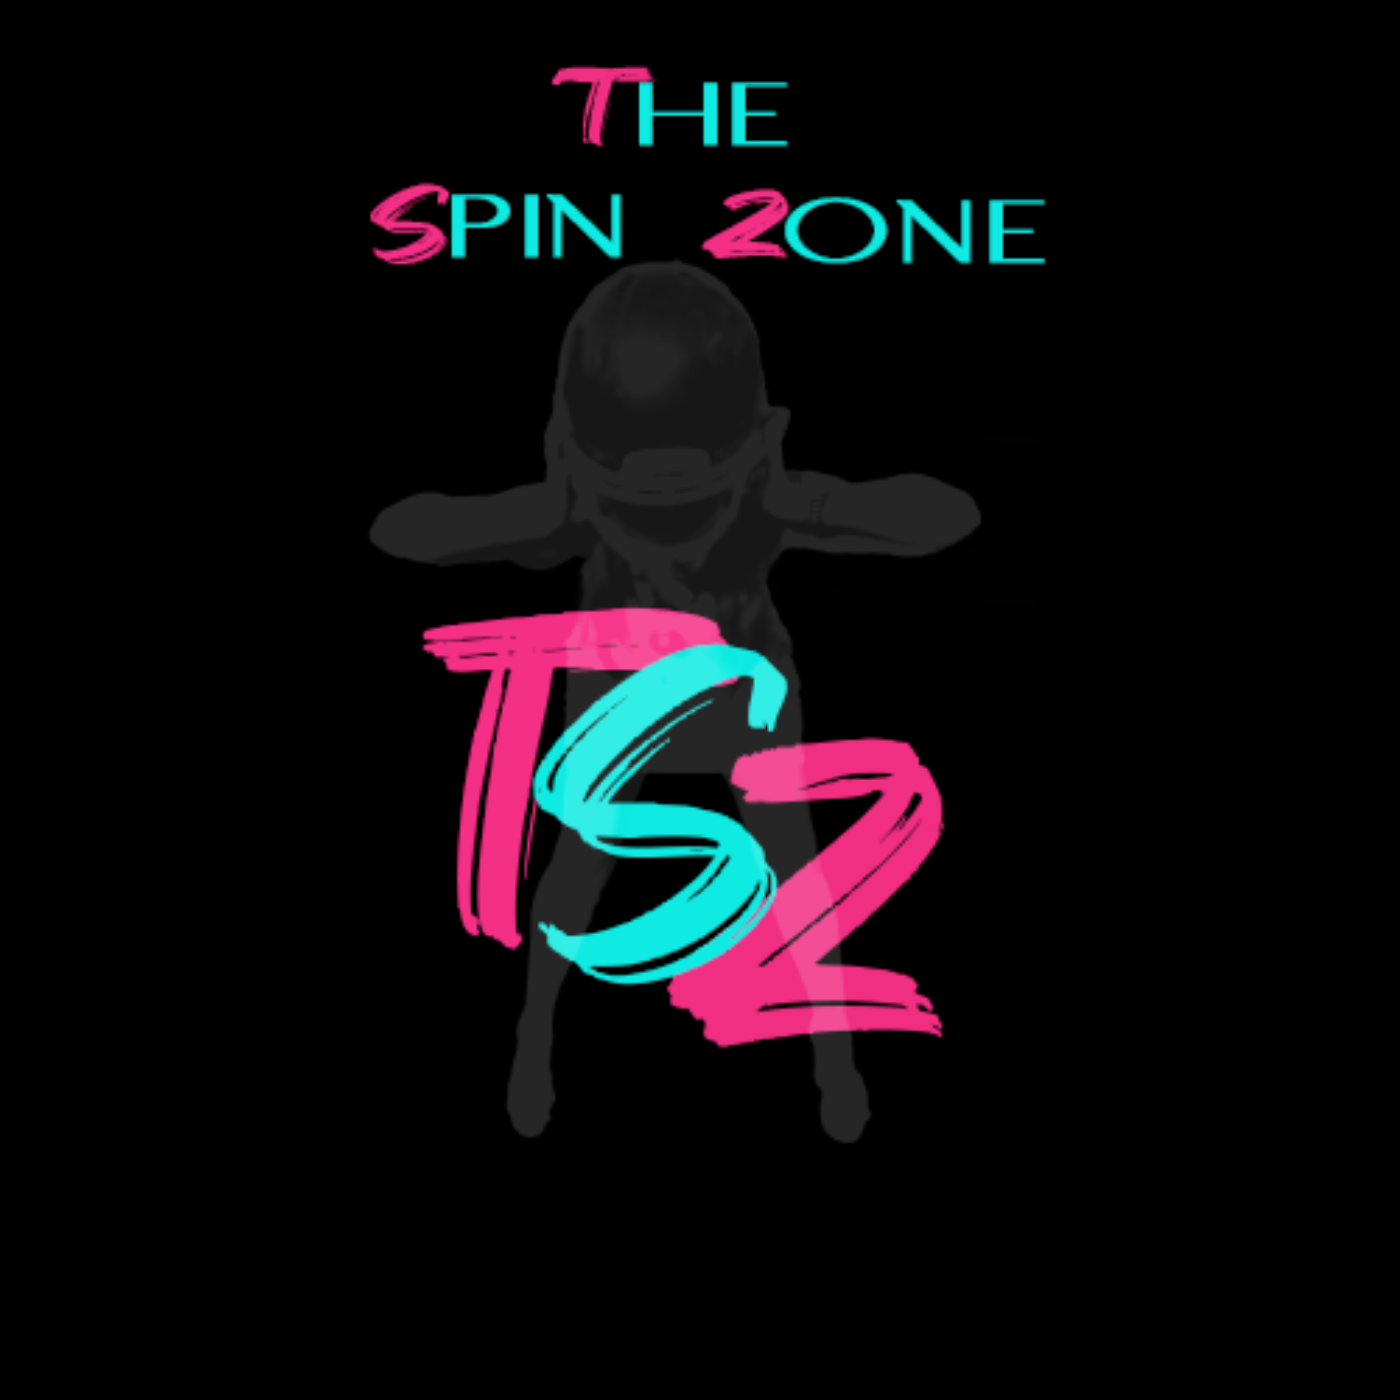 The Spin Zone show art